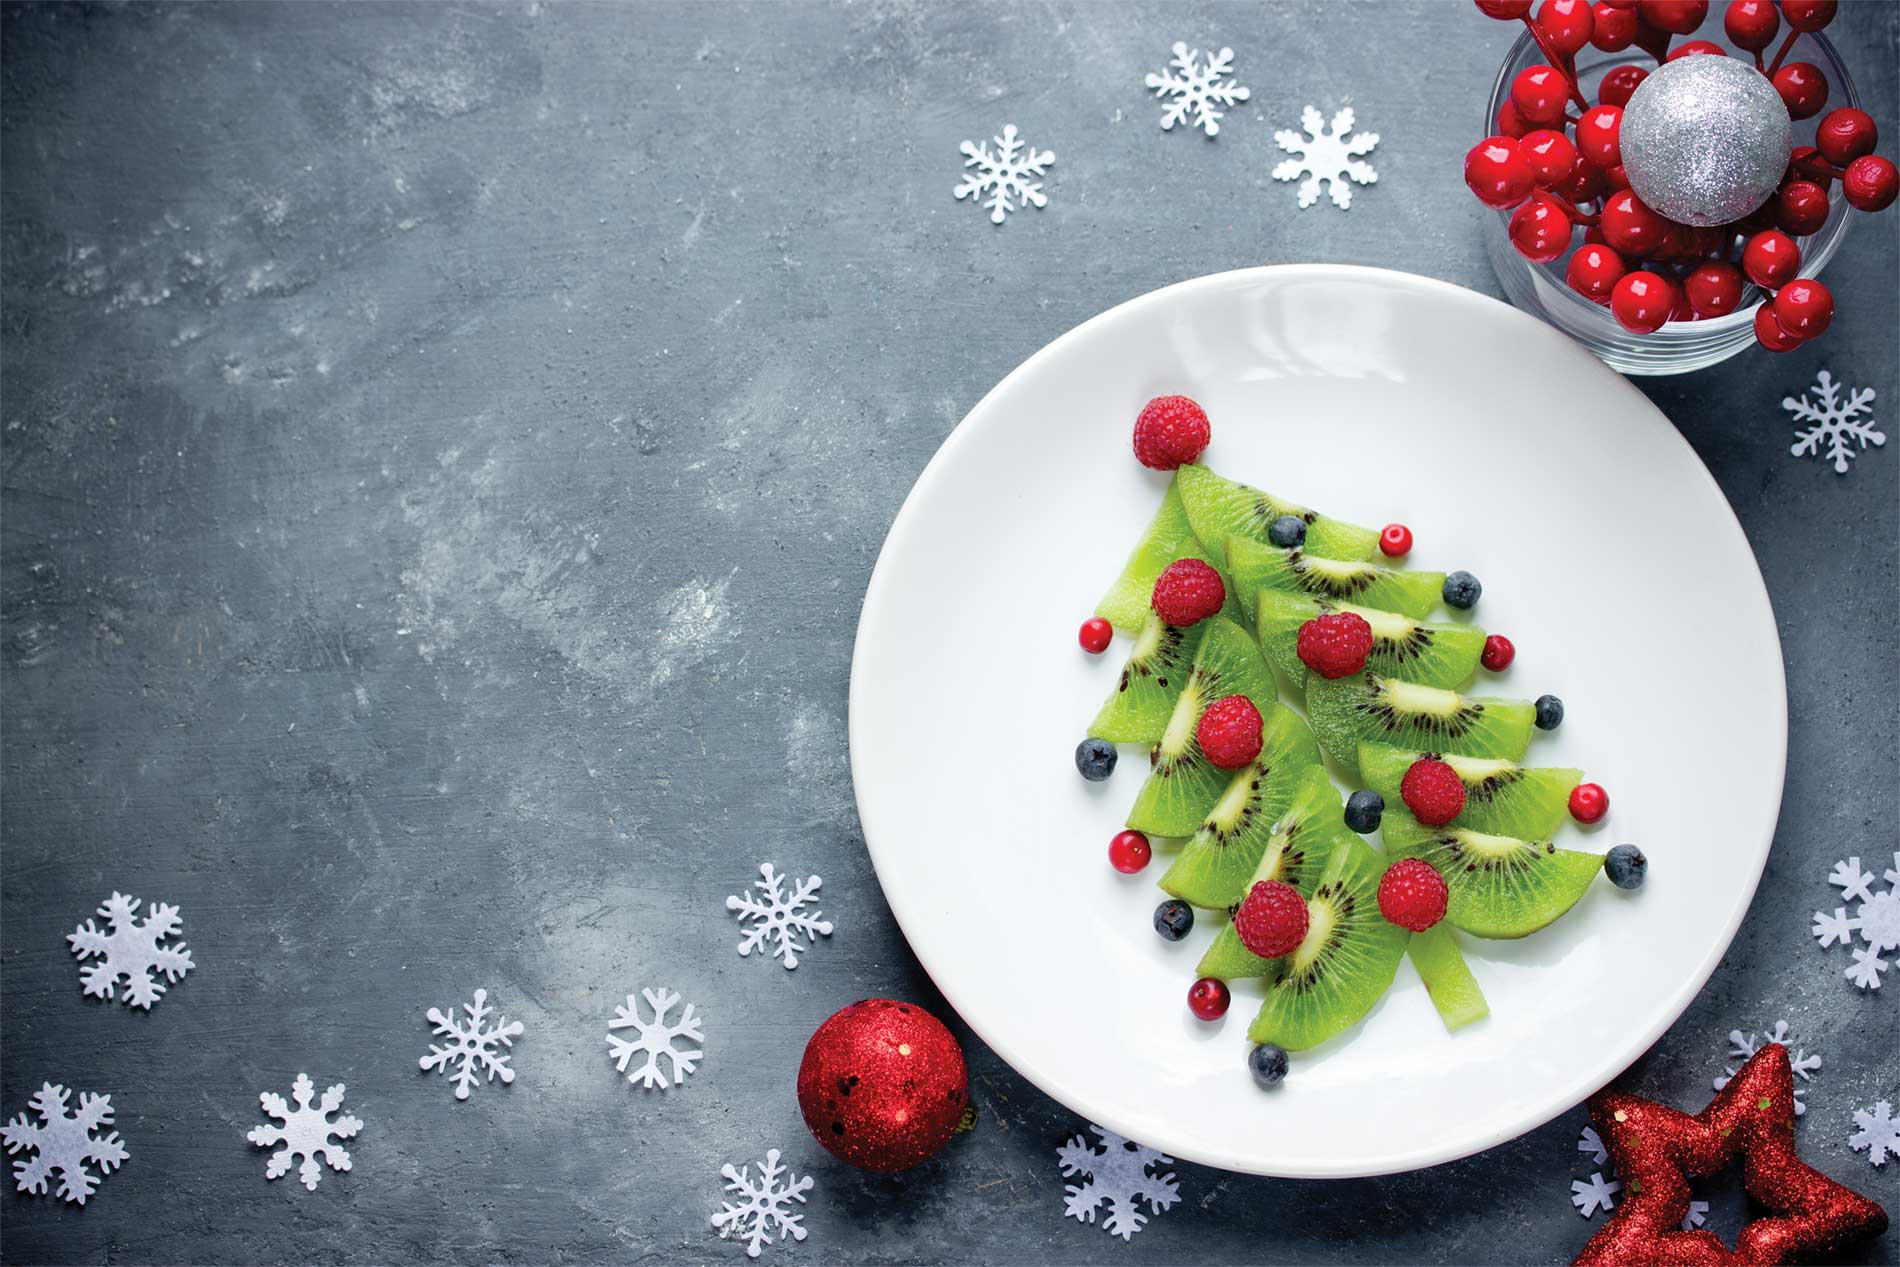 6 Tips for Healthy Holiday Eating